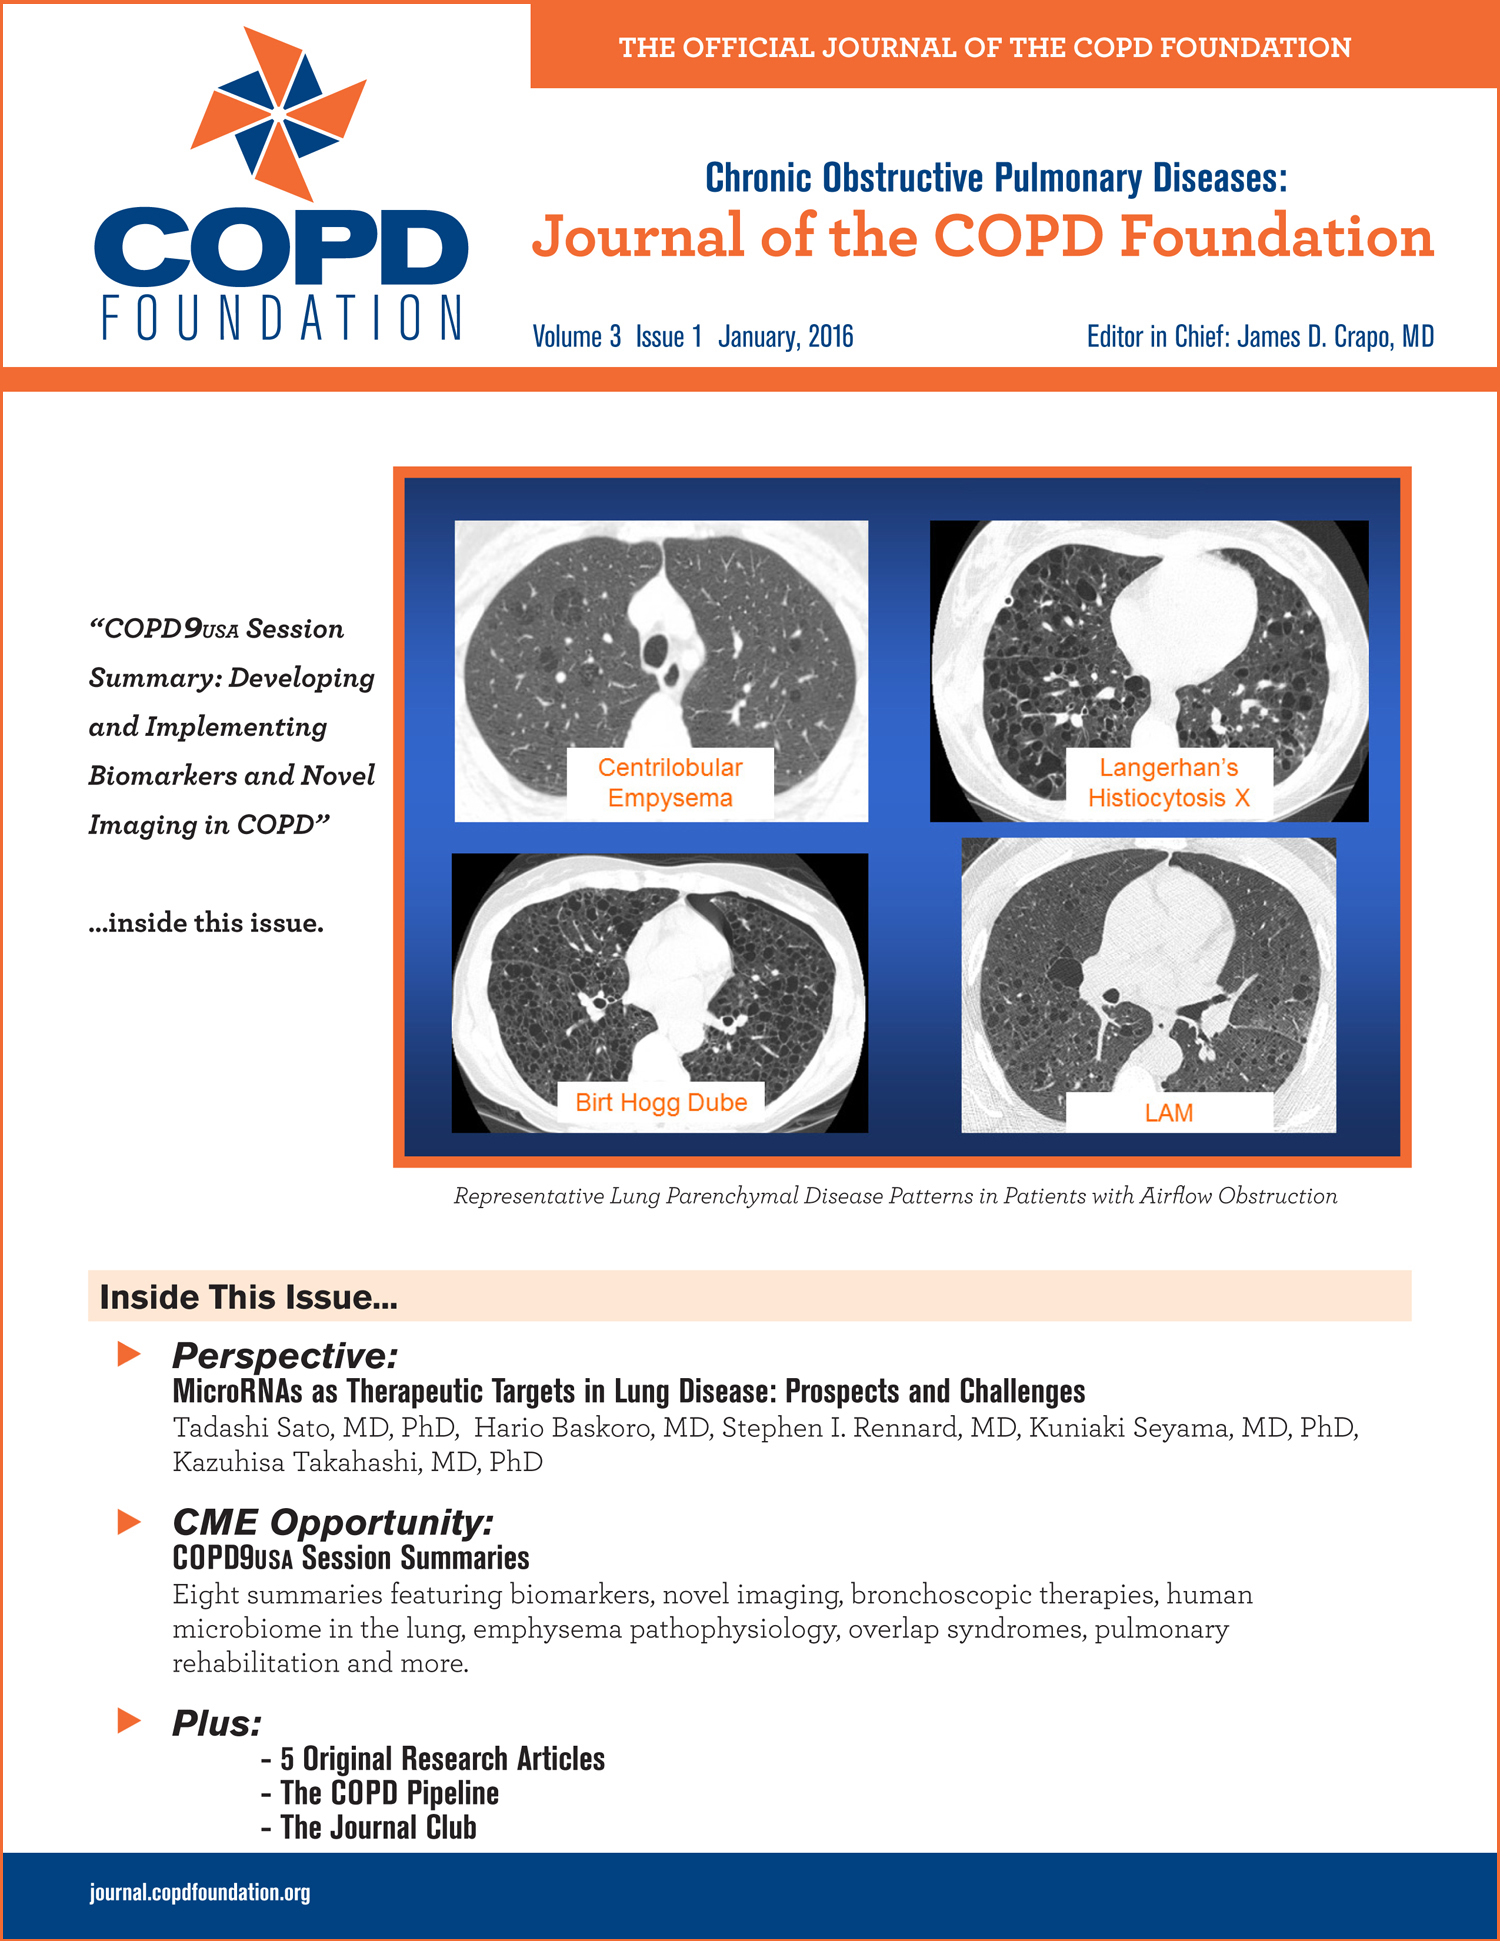 Peak expiratory flow rate and copd exacerbation journal of copd jcopdf cover image nvjuhfo Choice Image